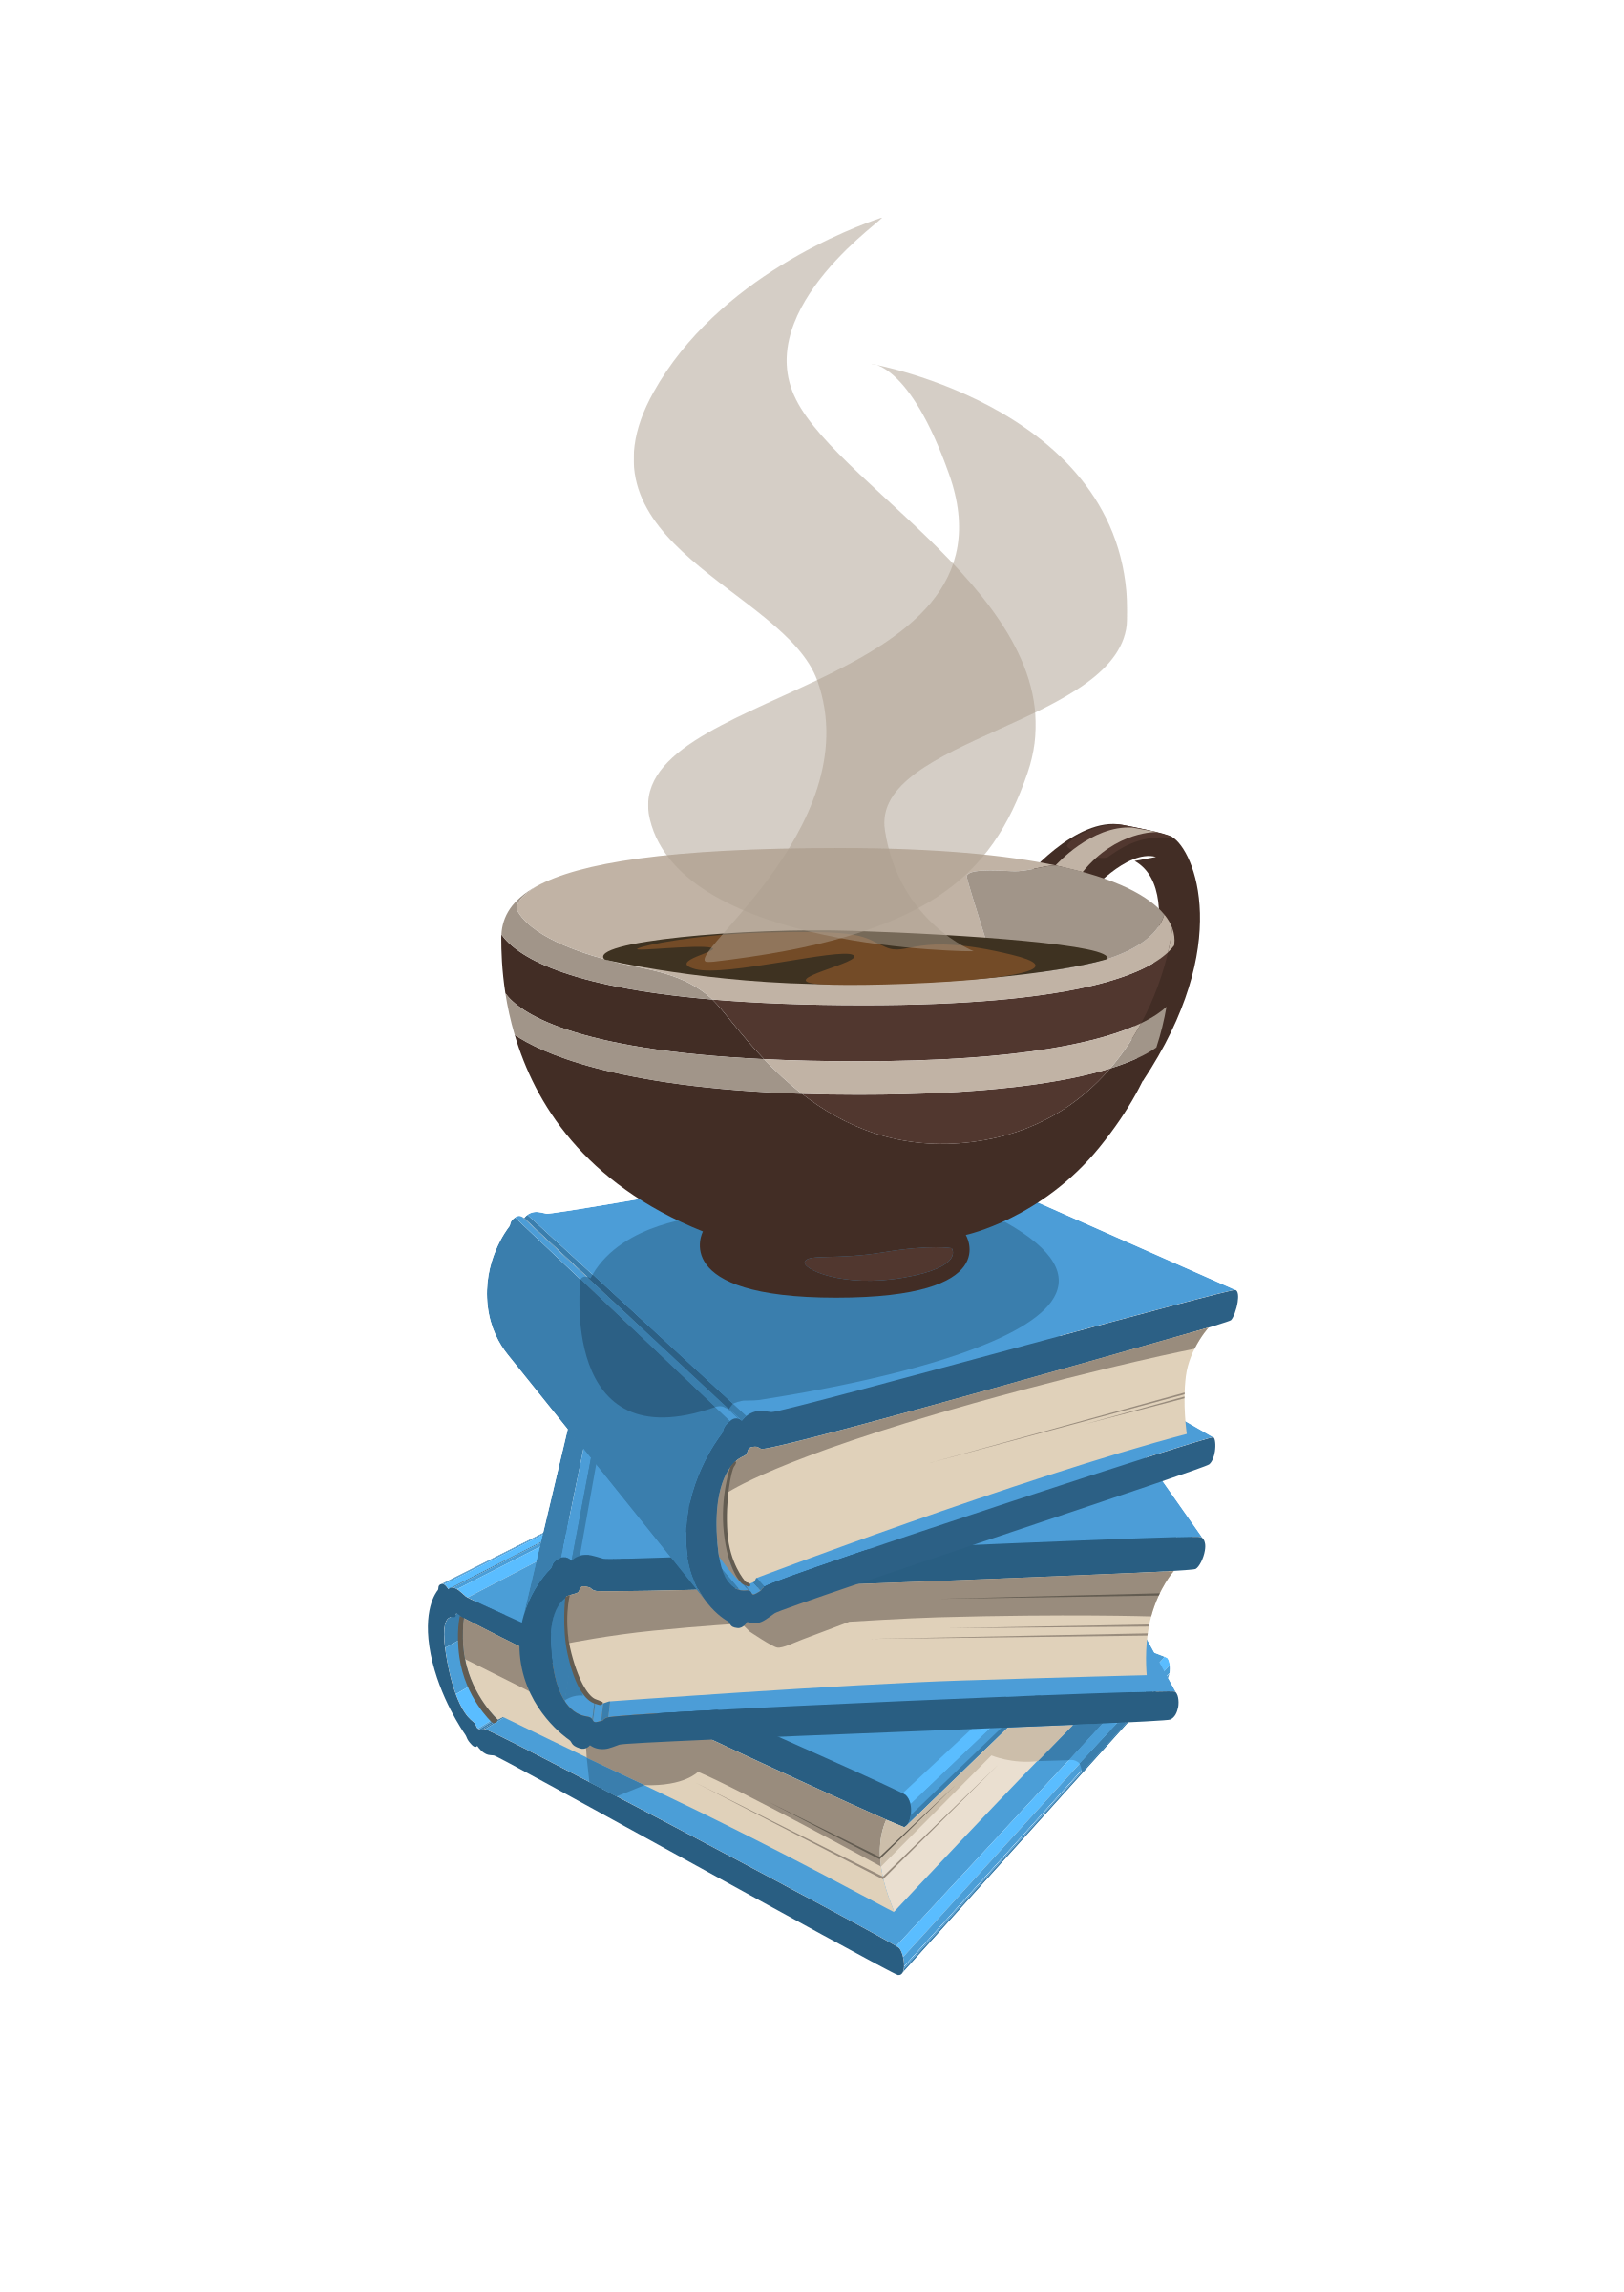 Clipart Coffee book